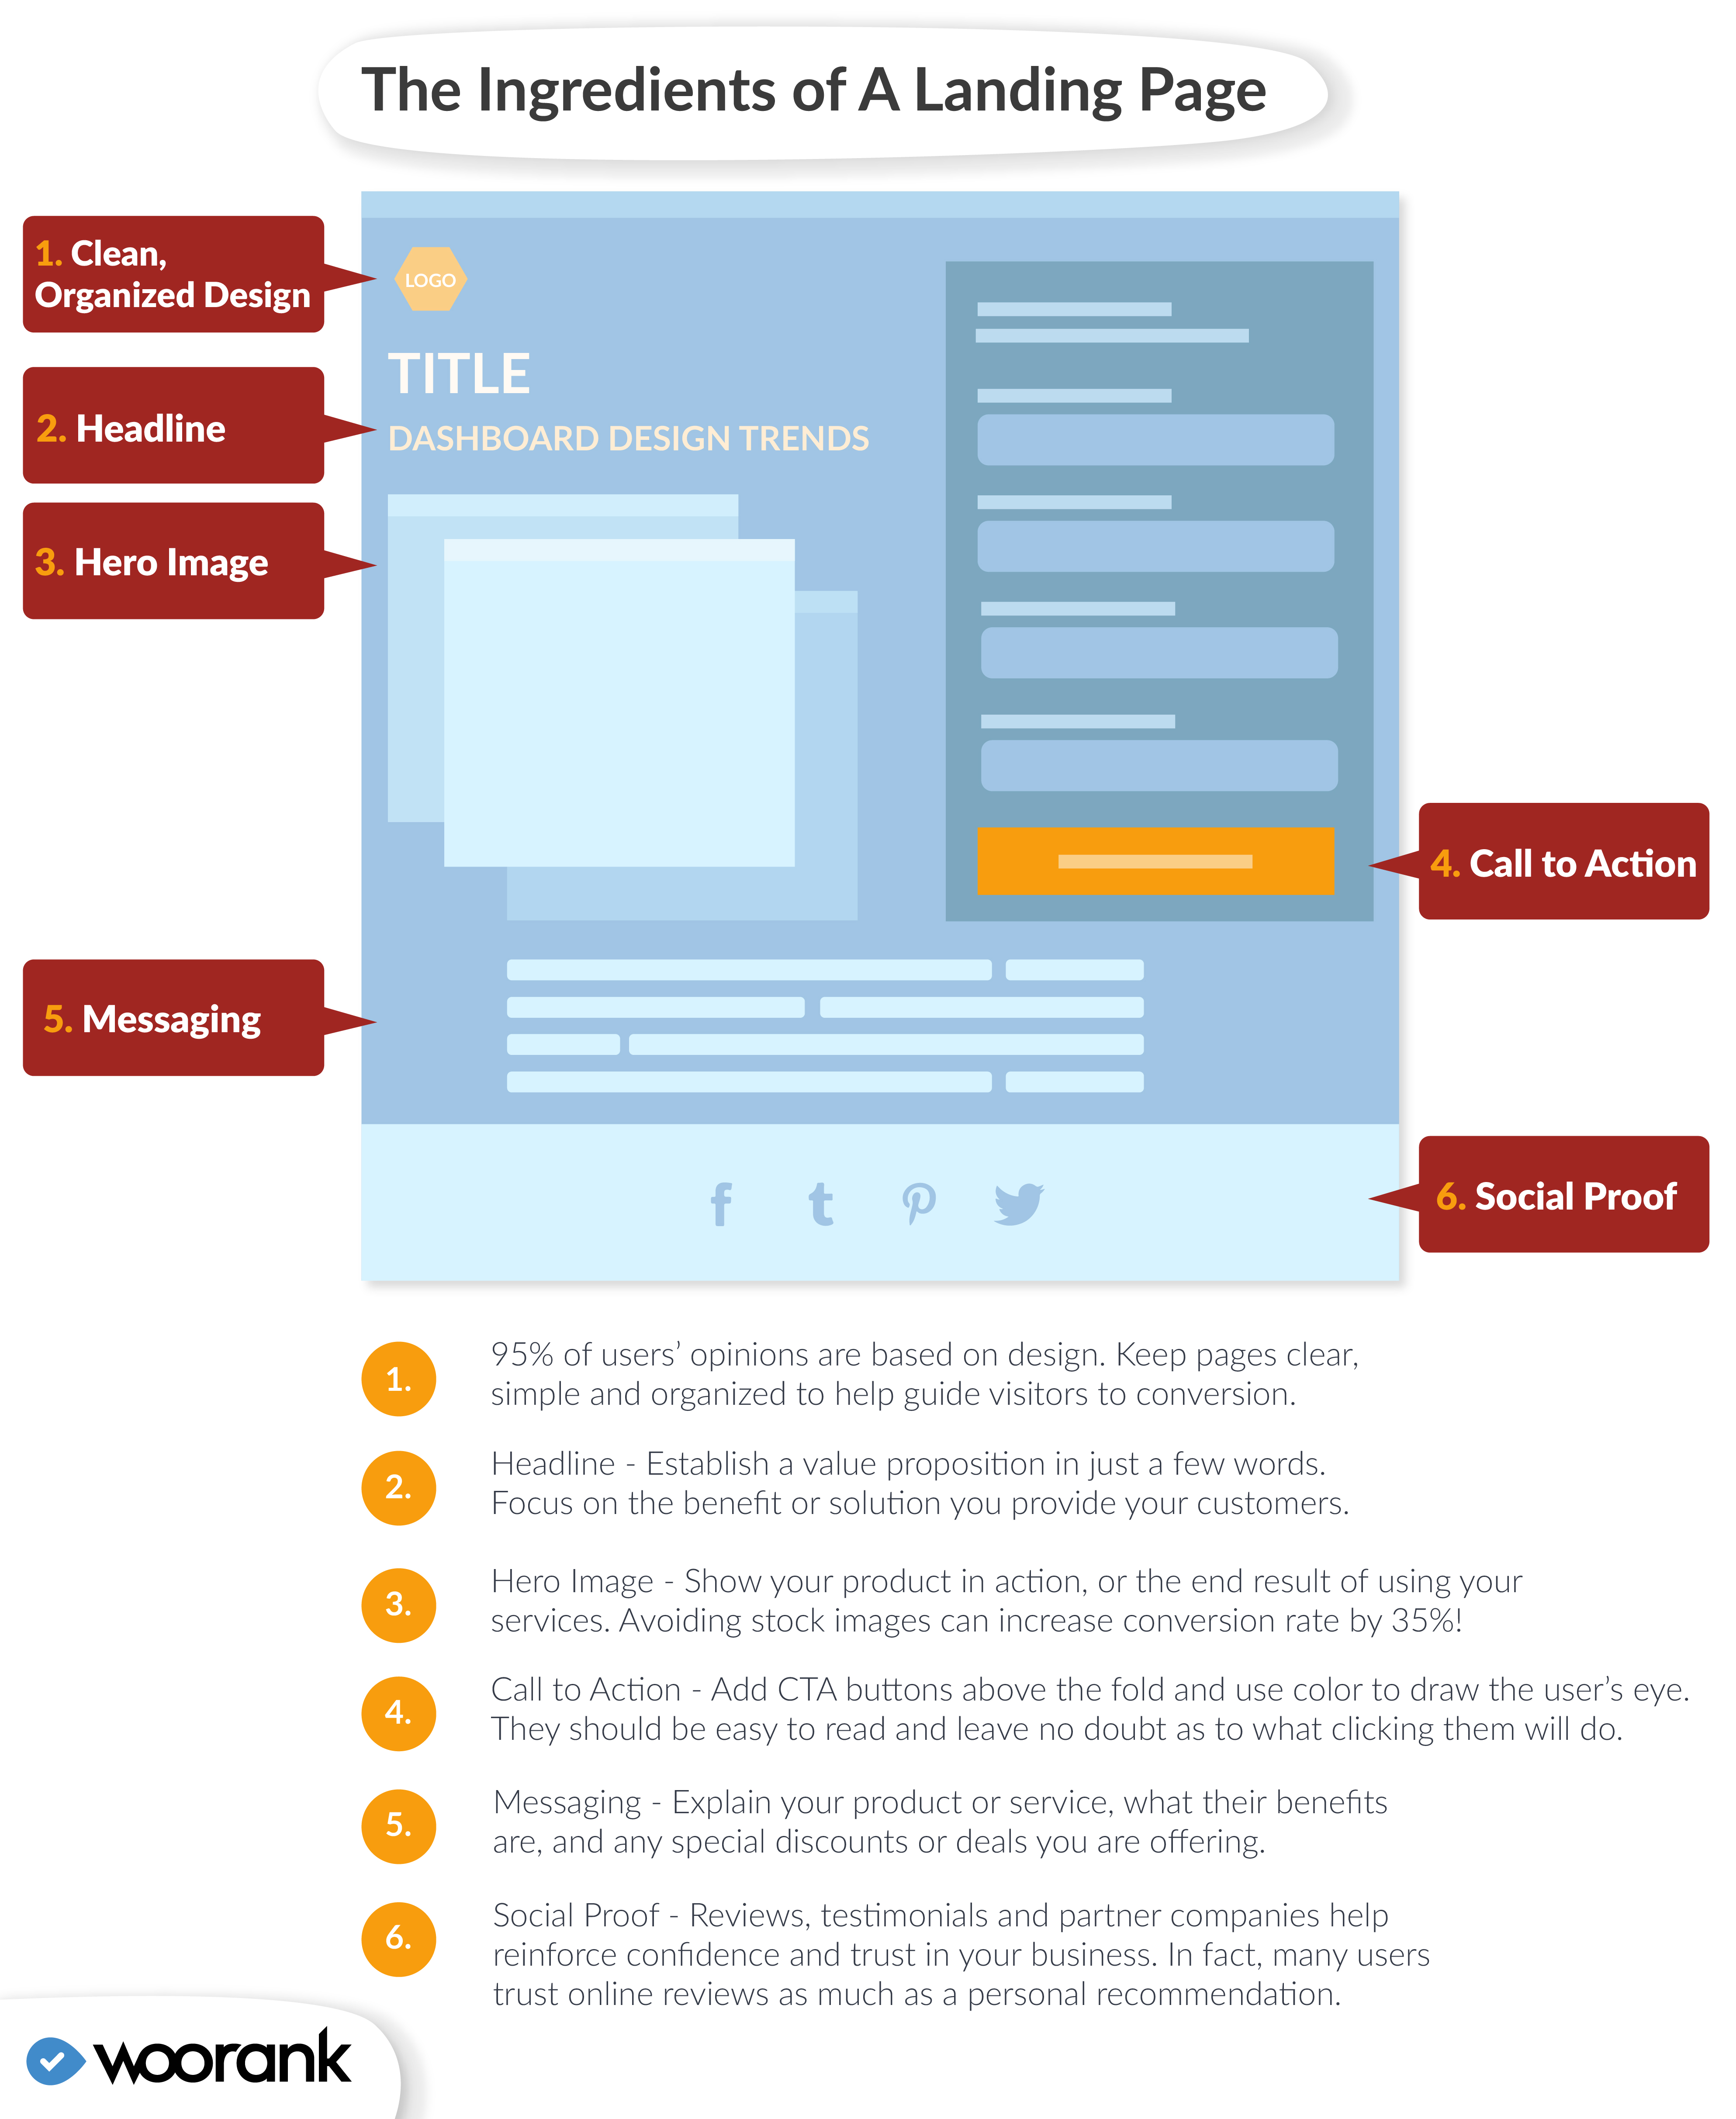 Ingredients of a landing page infographic